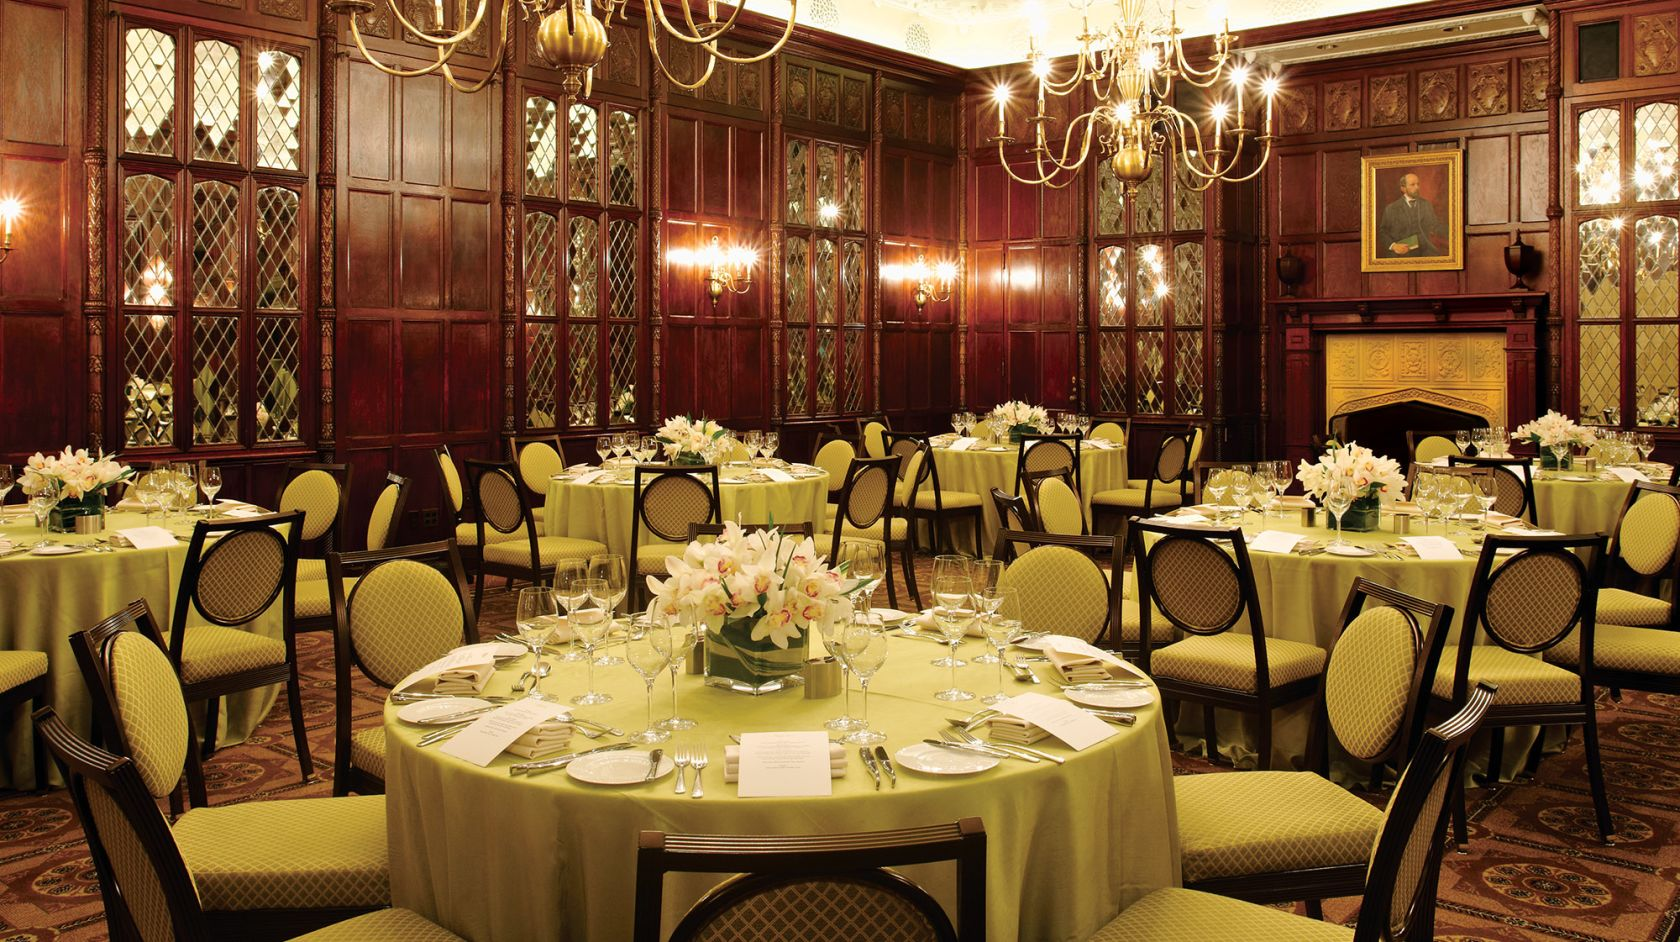 The Hay-Adams Room set up for a private event with circular tables